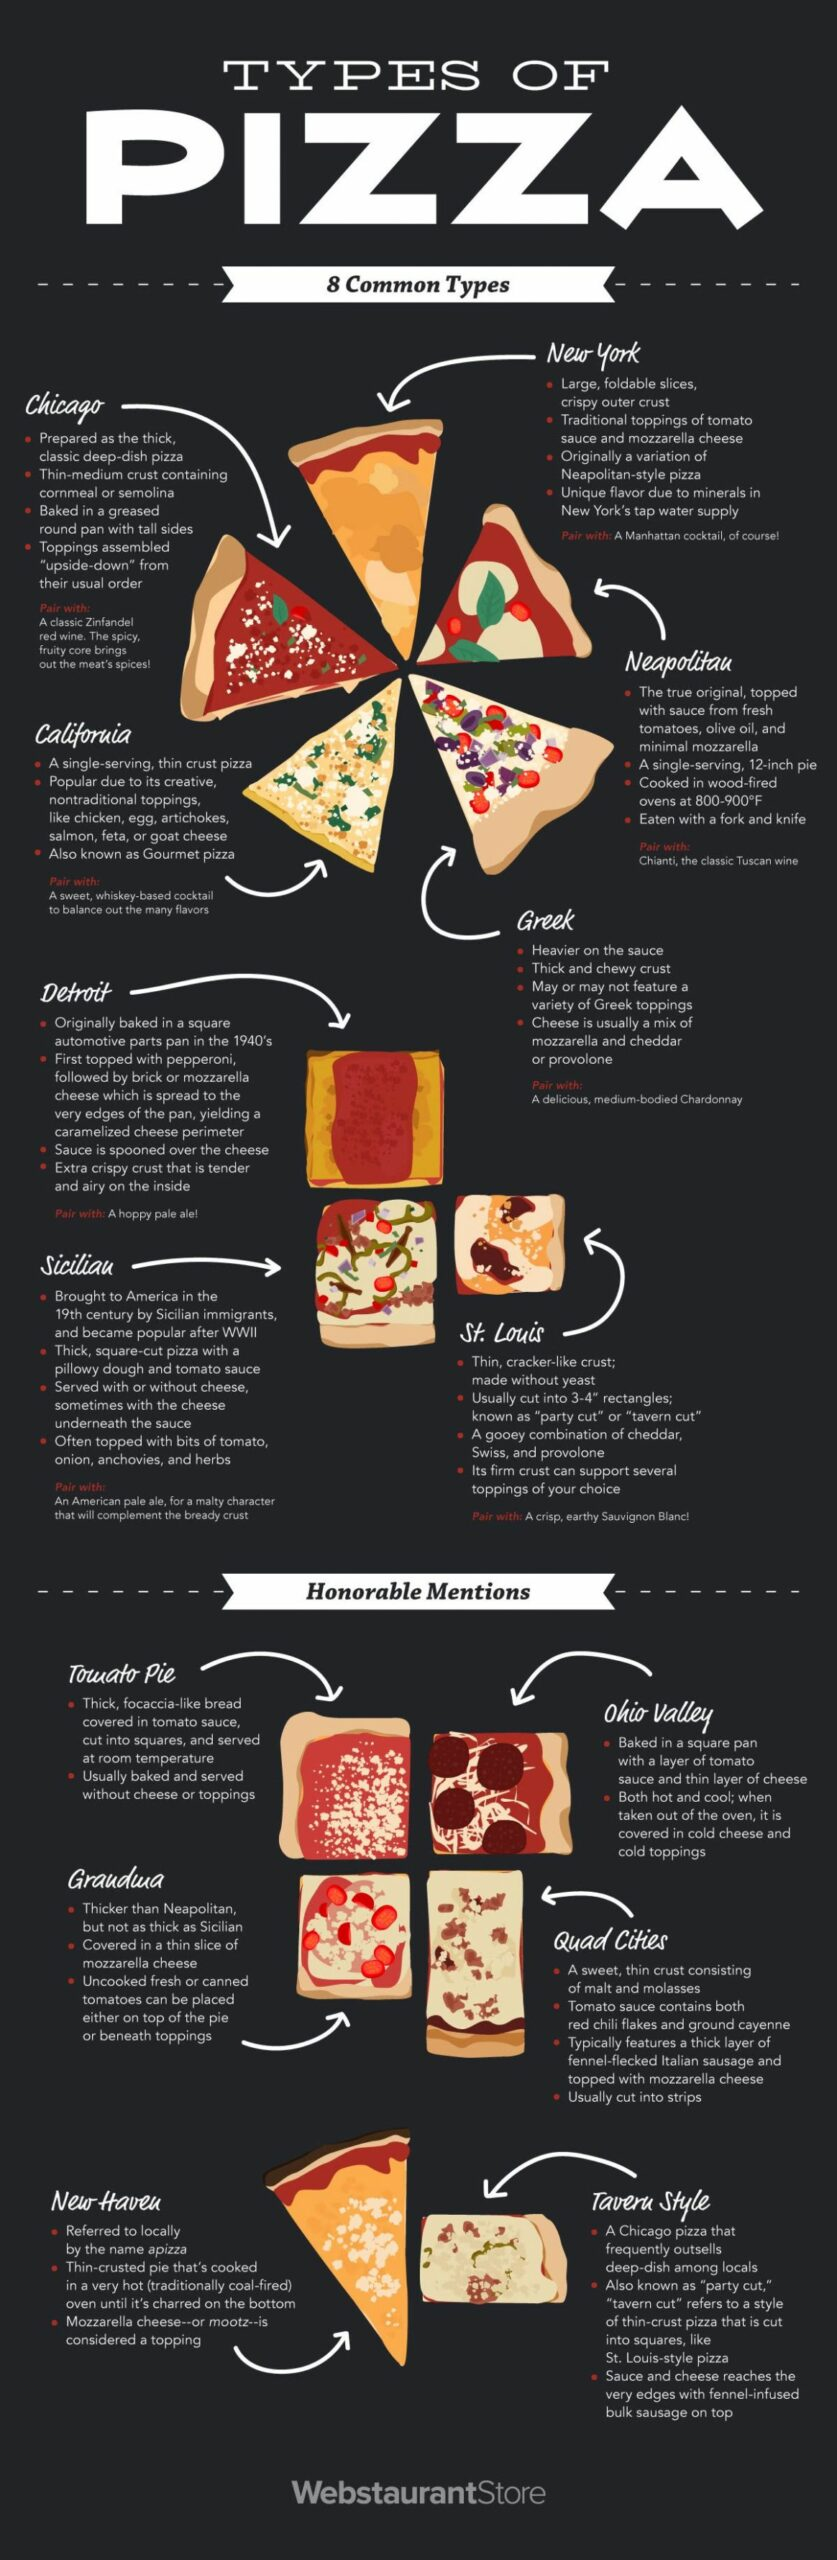 Types of Pizza & Pizza Crust Styles: The Definitive Guide - Pizza Recipes List